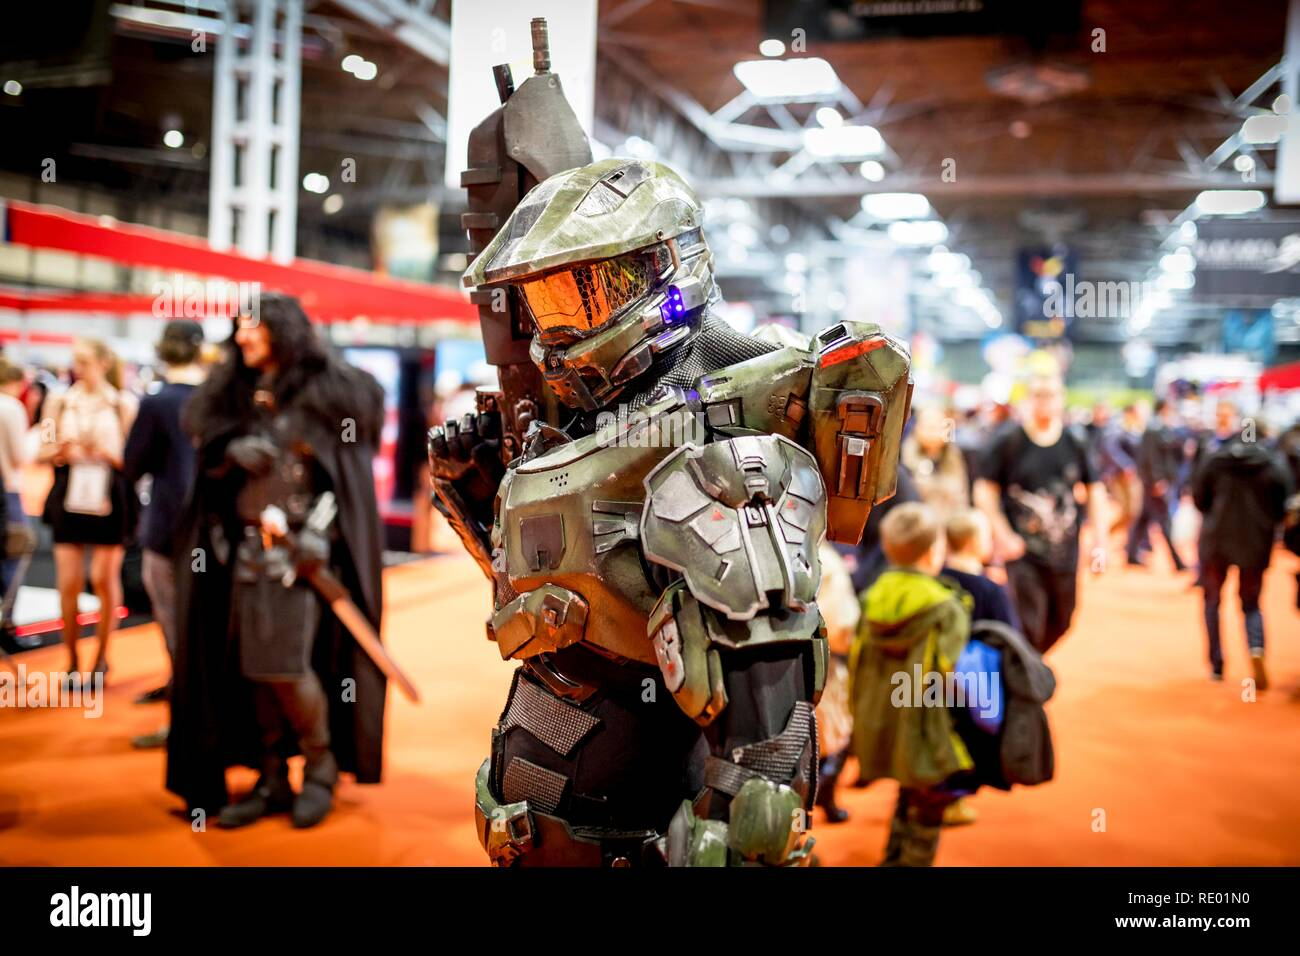 Birmingham, UK - March 17, 2018. A cosplayer dressed as an Halo Master Chief the Activision video game series at a comic con in Birmingham, UK - Stock Image